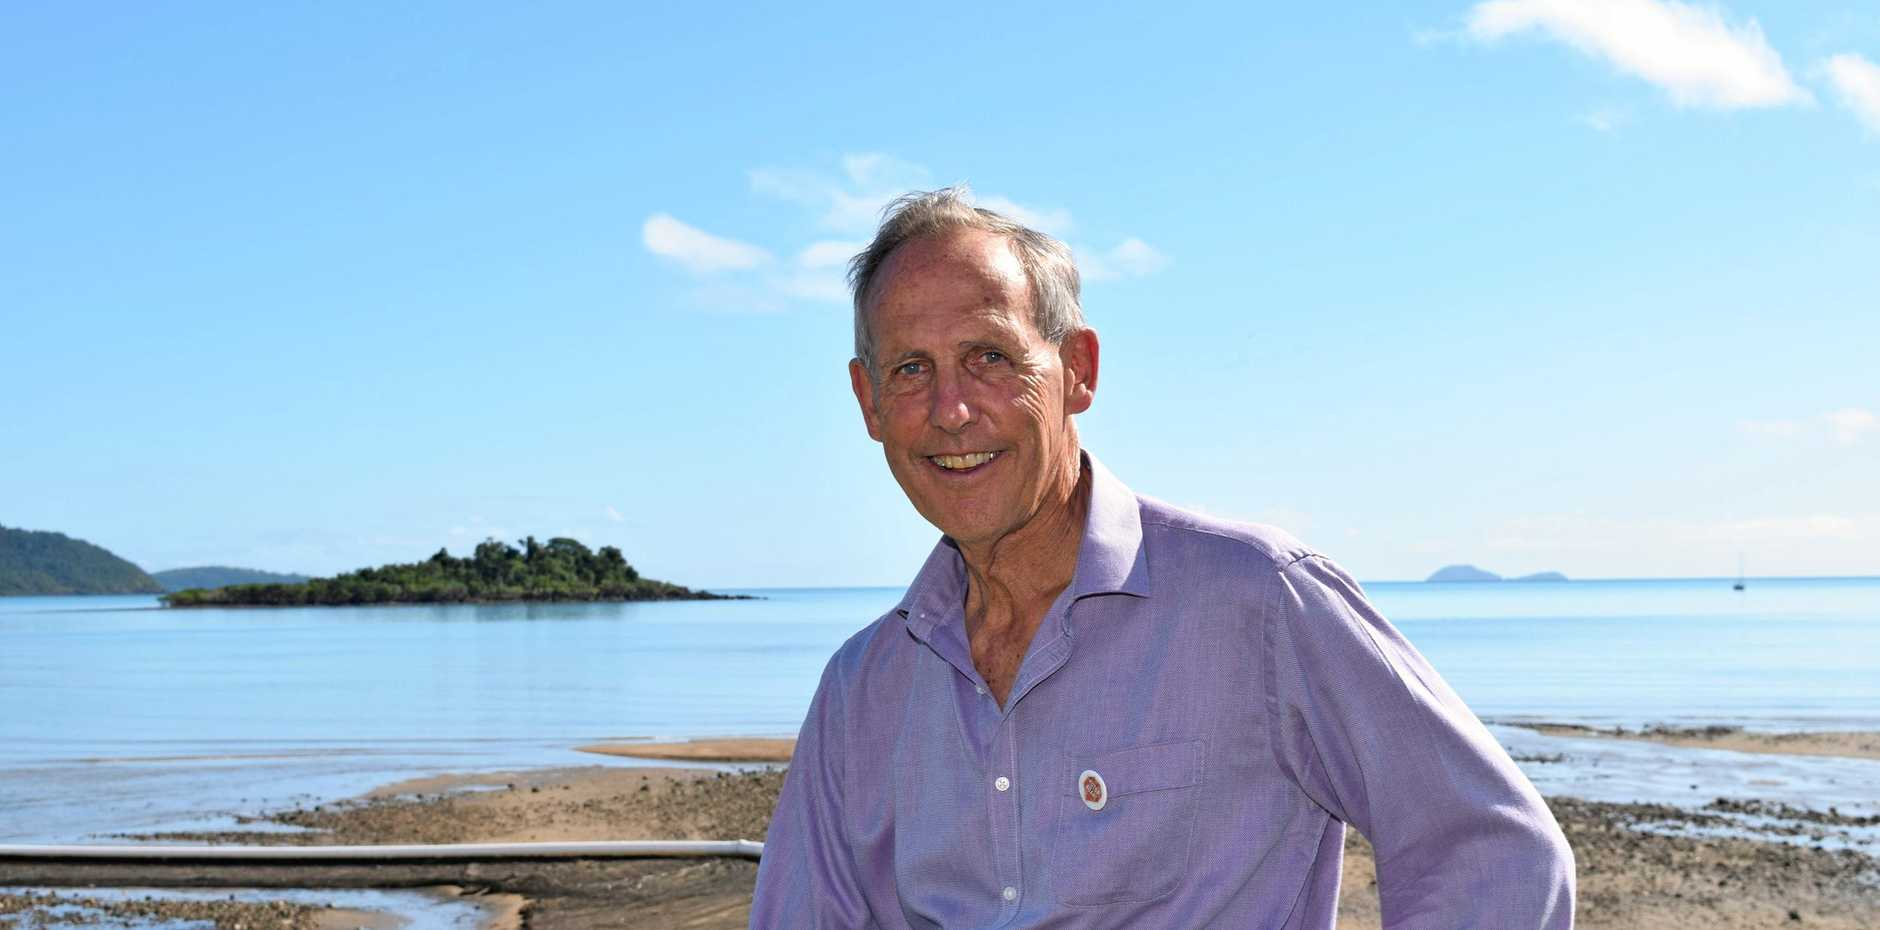 Former Greens leader, Bob Brown has spearheaded the Stop Adani Convoy, which arrived in Airlie Beach last week.